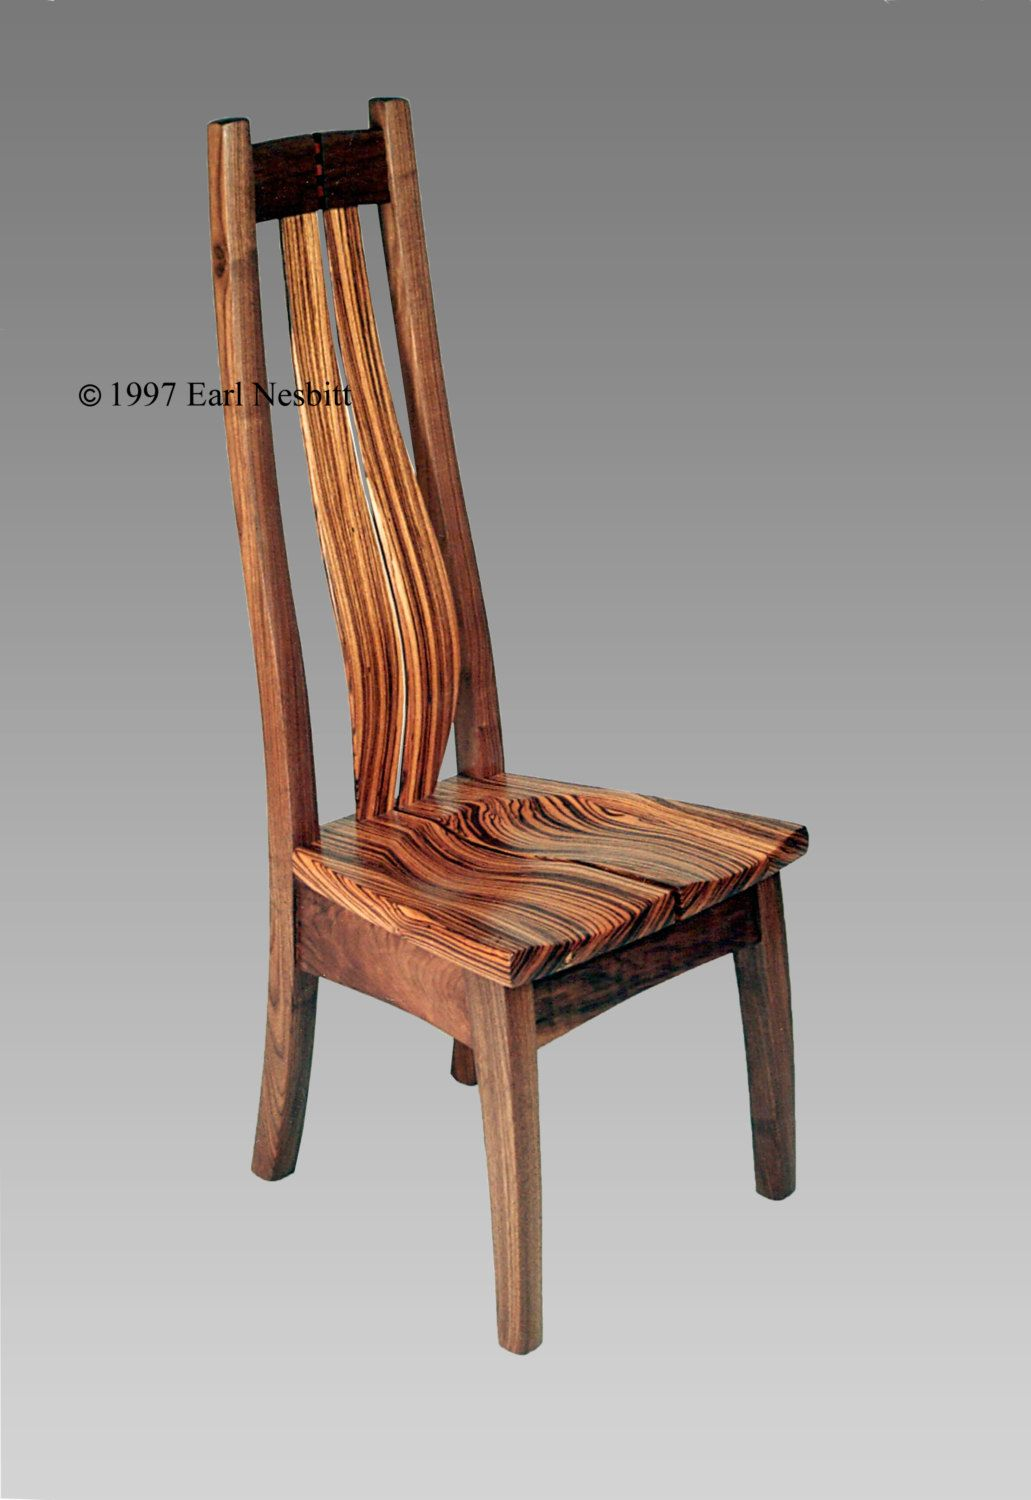 Chair zebrawood walnut Shipping crates Tung oil and Crates